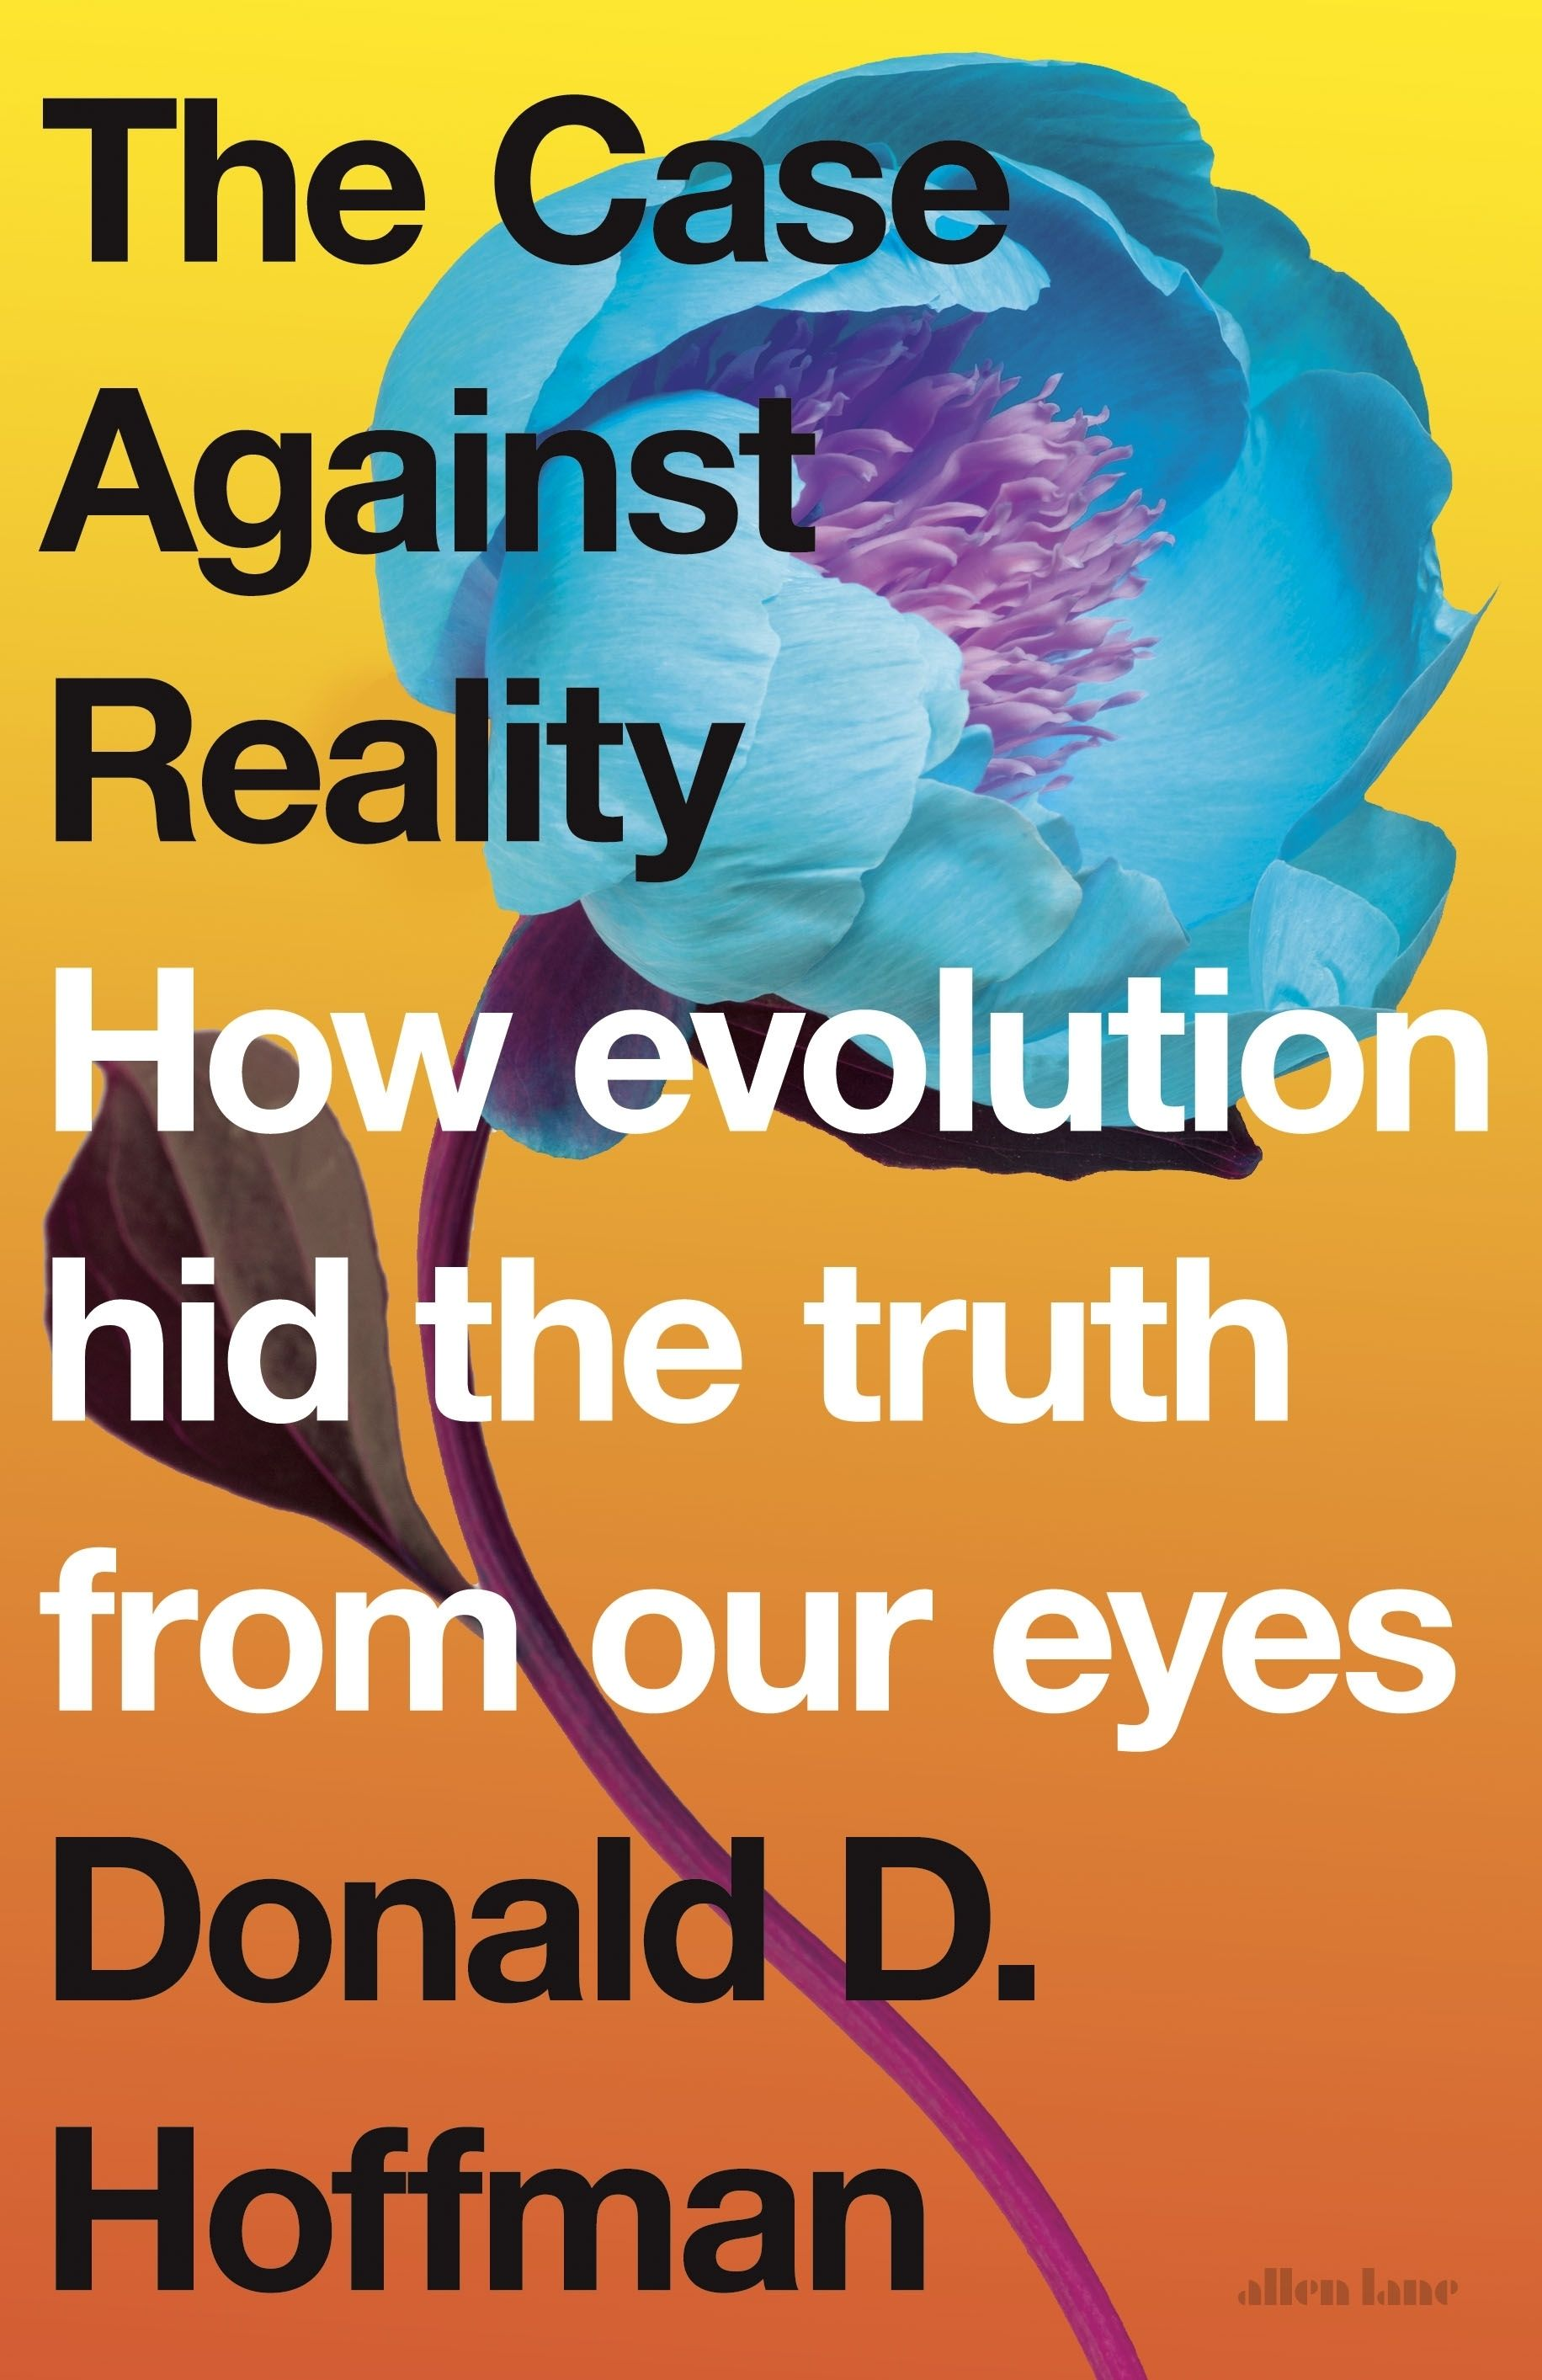 Book review The Case Against Reality How Evolution Hid